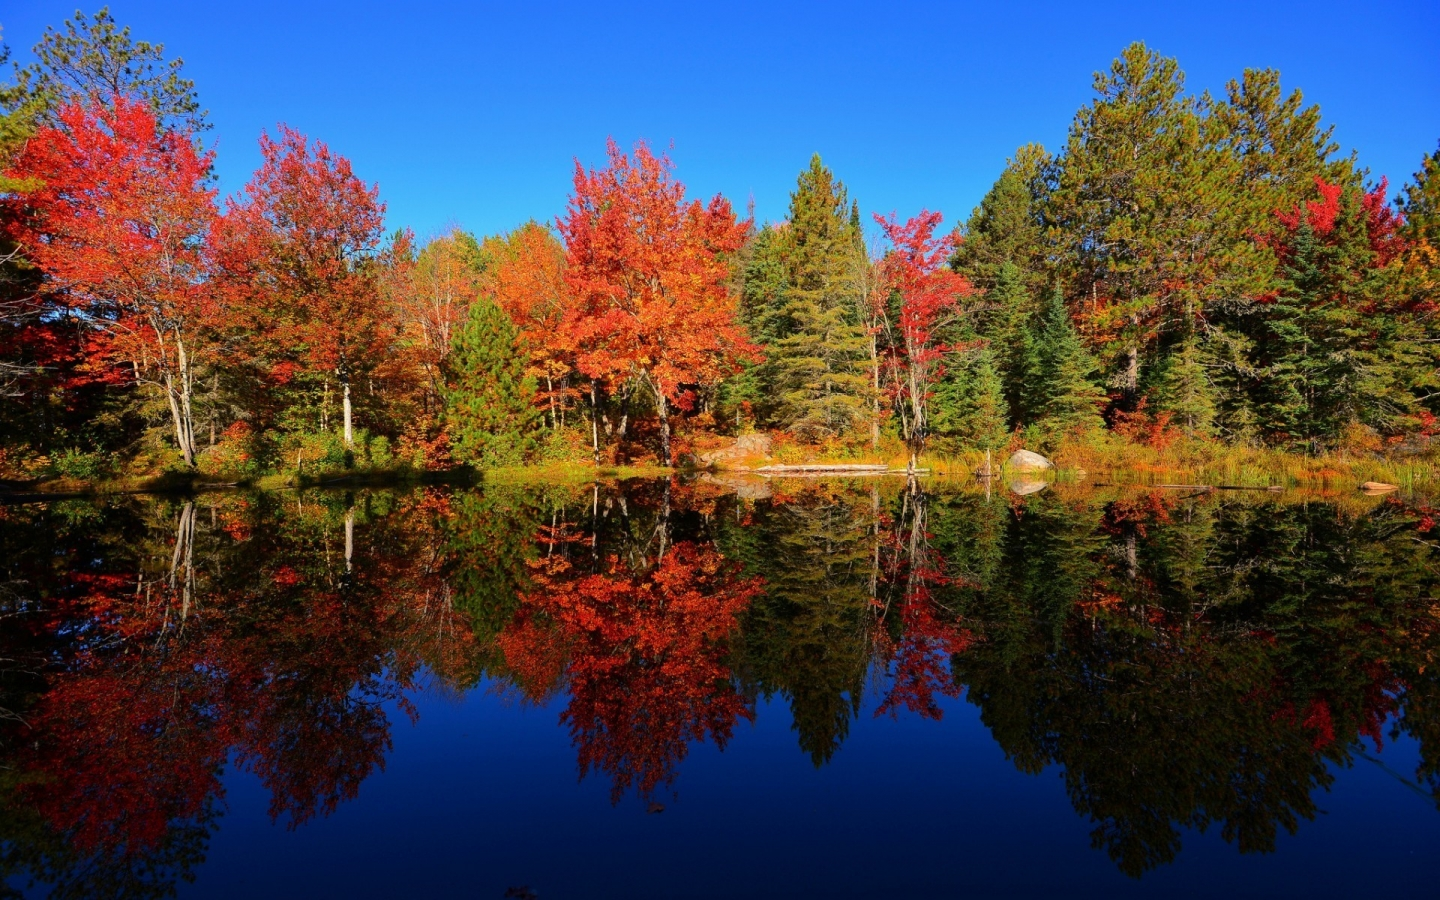 Colourful Forest Reflection for 1440 x 900 widescreen resolution